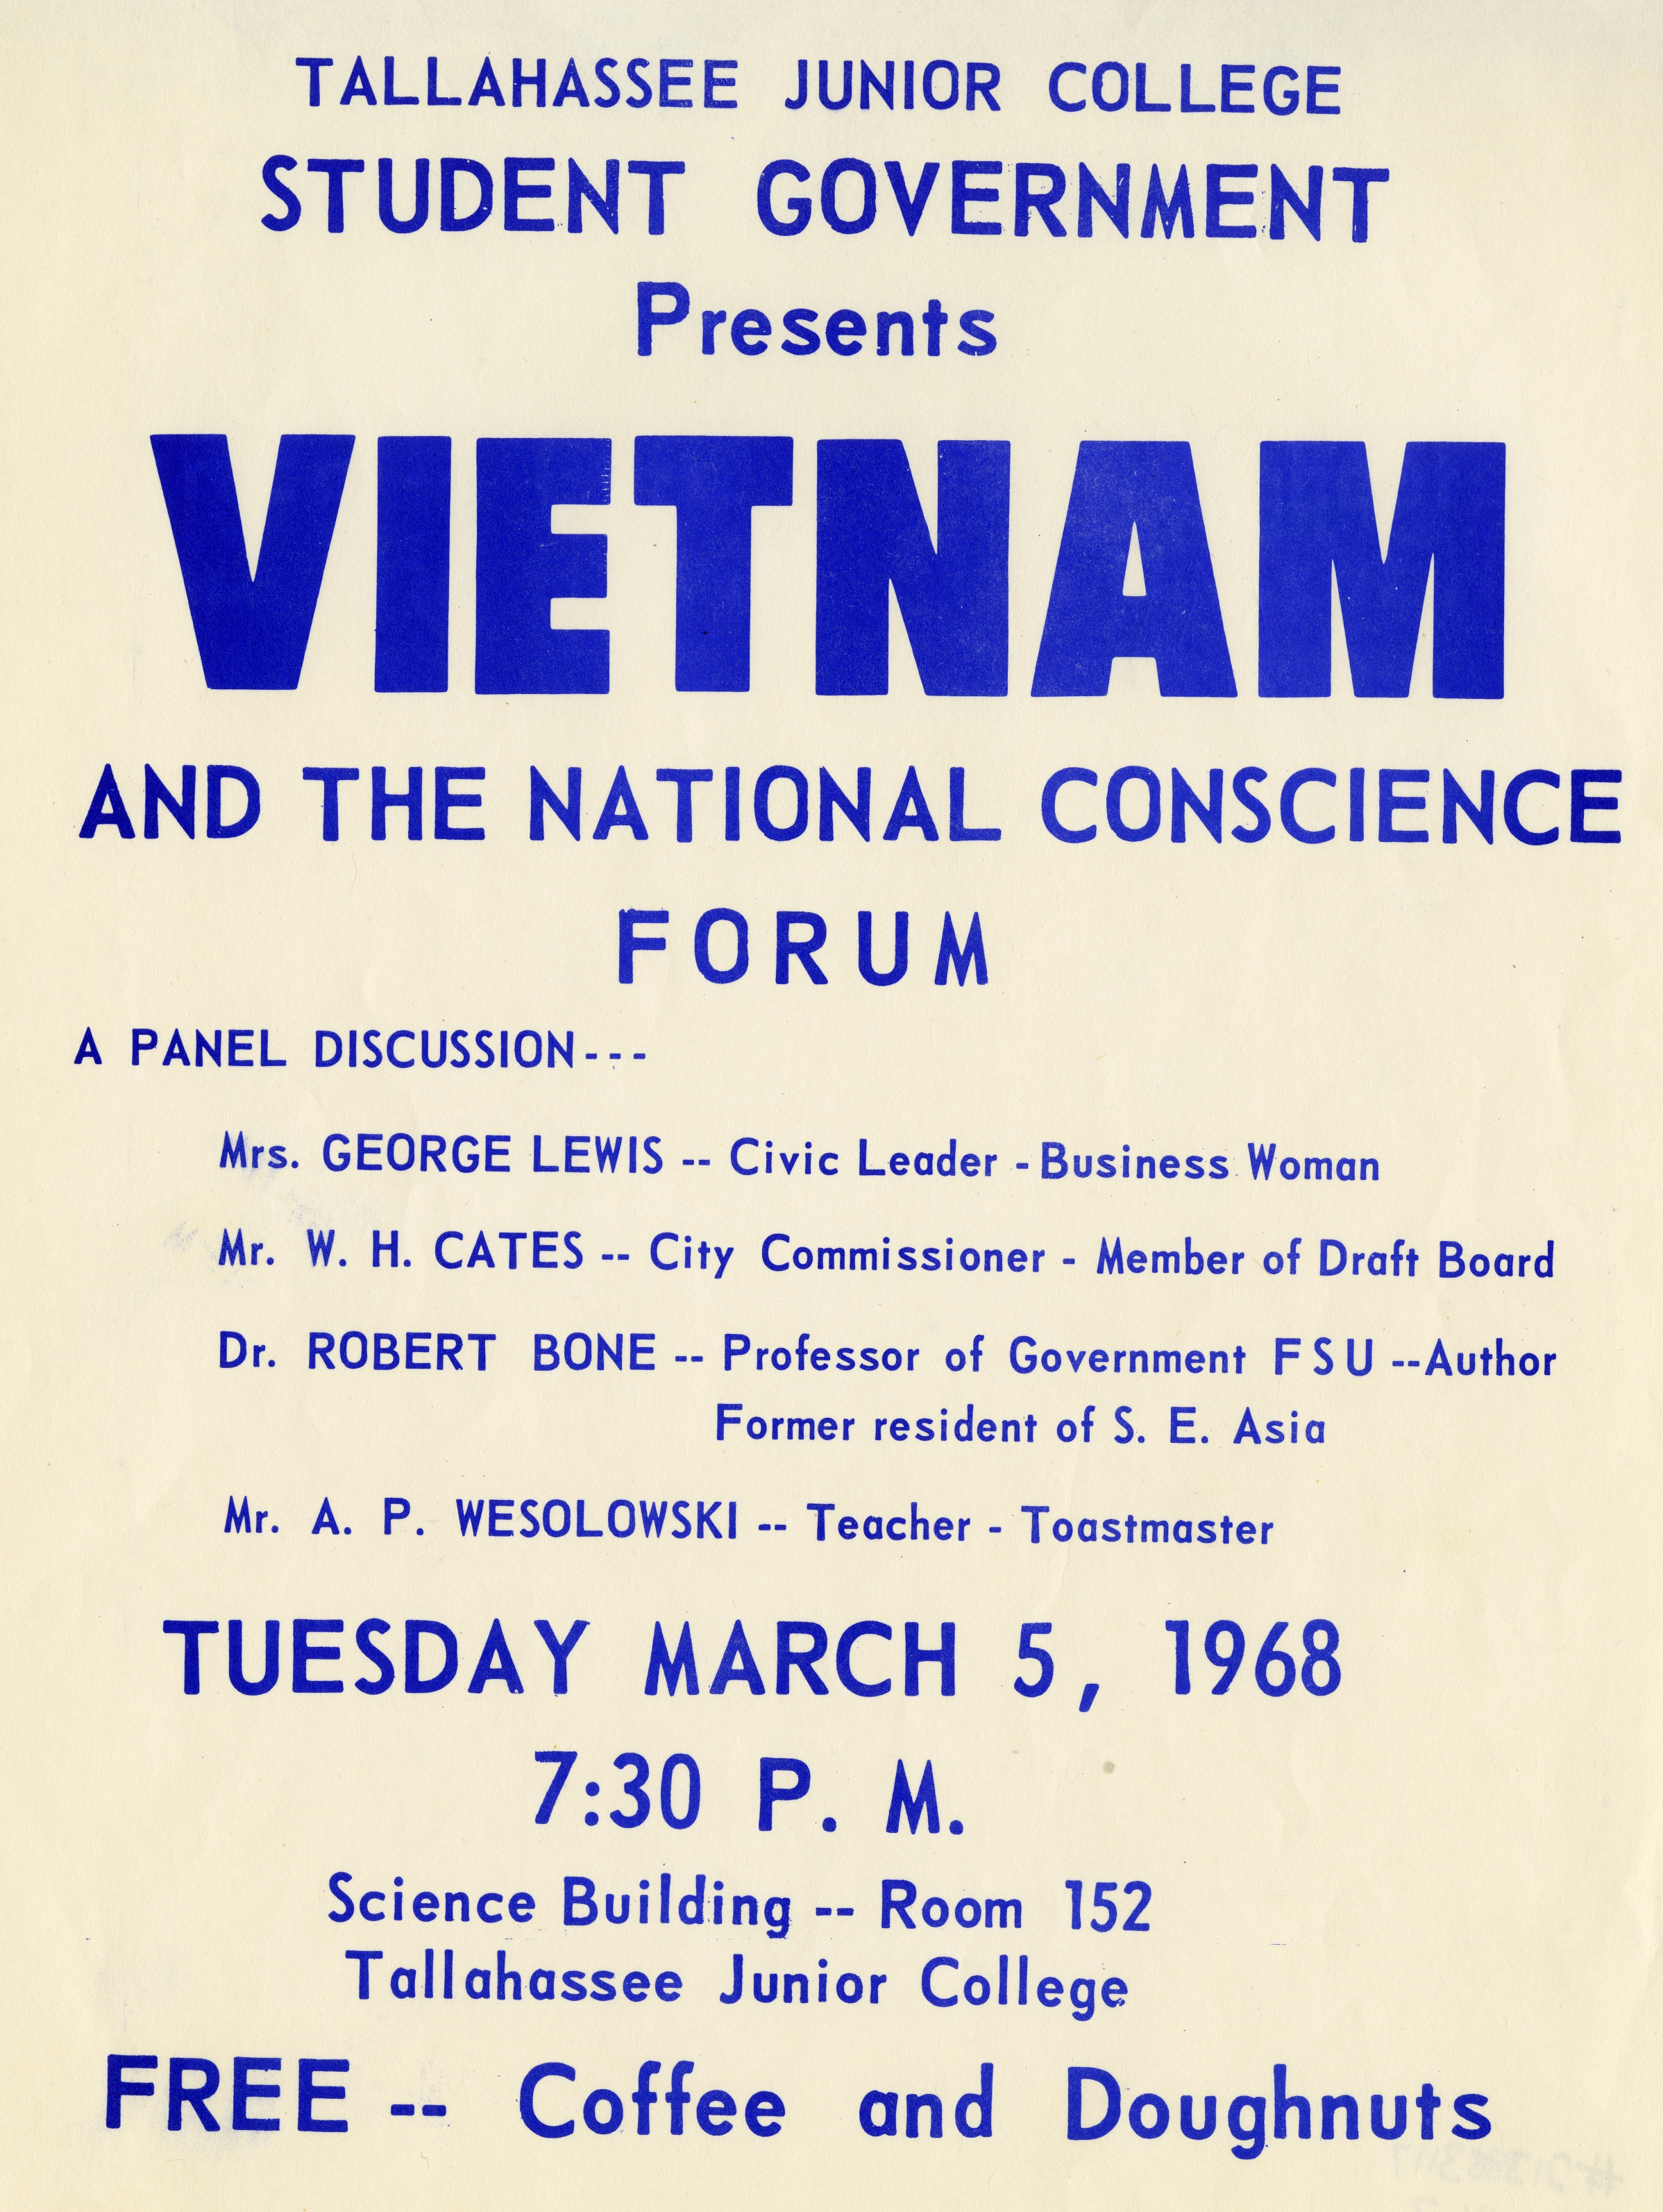 Vietnam and the national conscience forum.